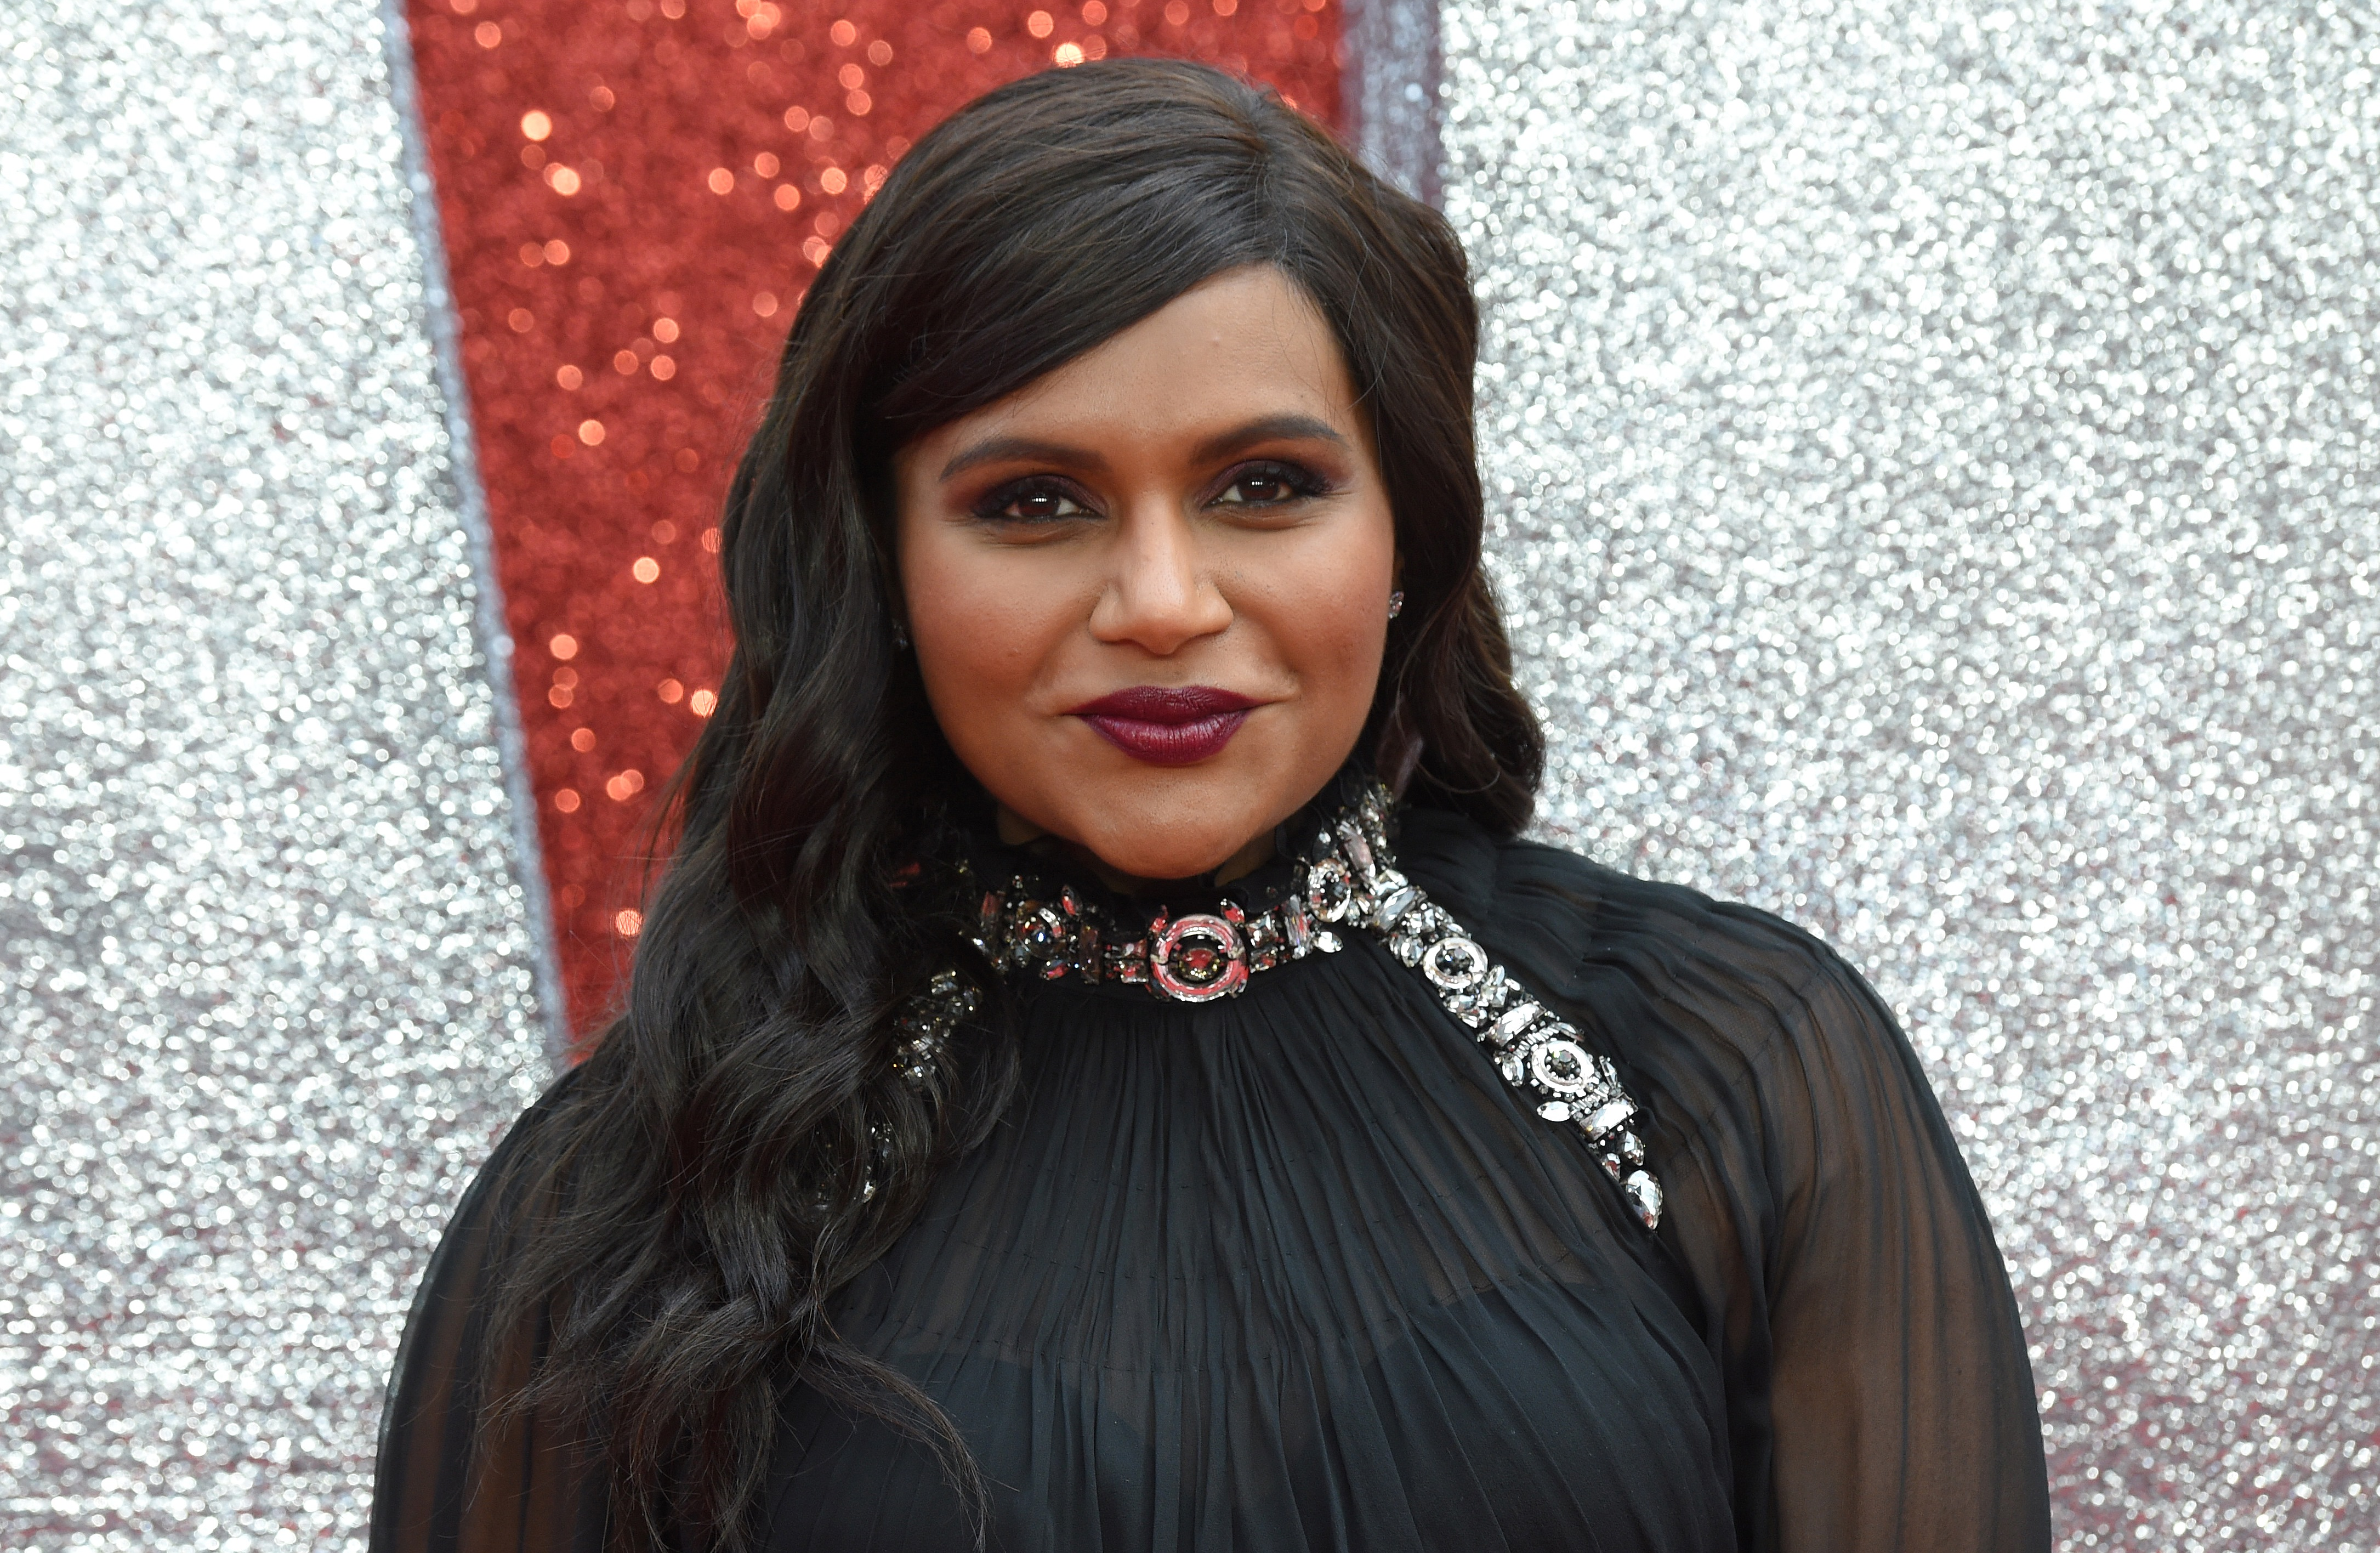 Mindy Kaling at the European premiere of the film  Ocean's 8  in London on June 13, 2018.